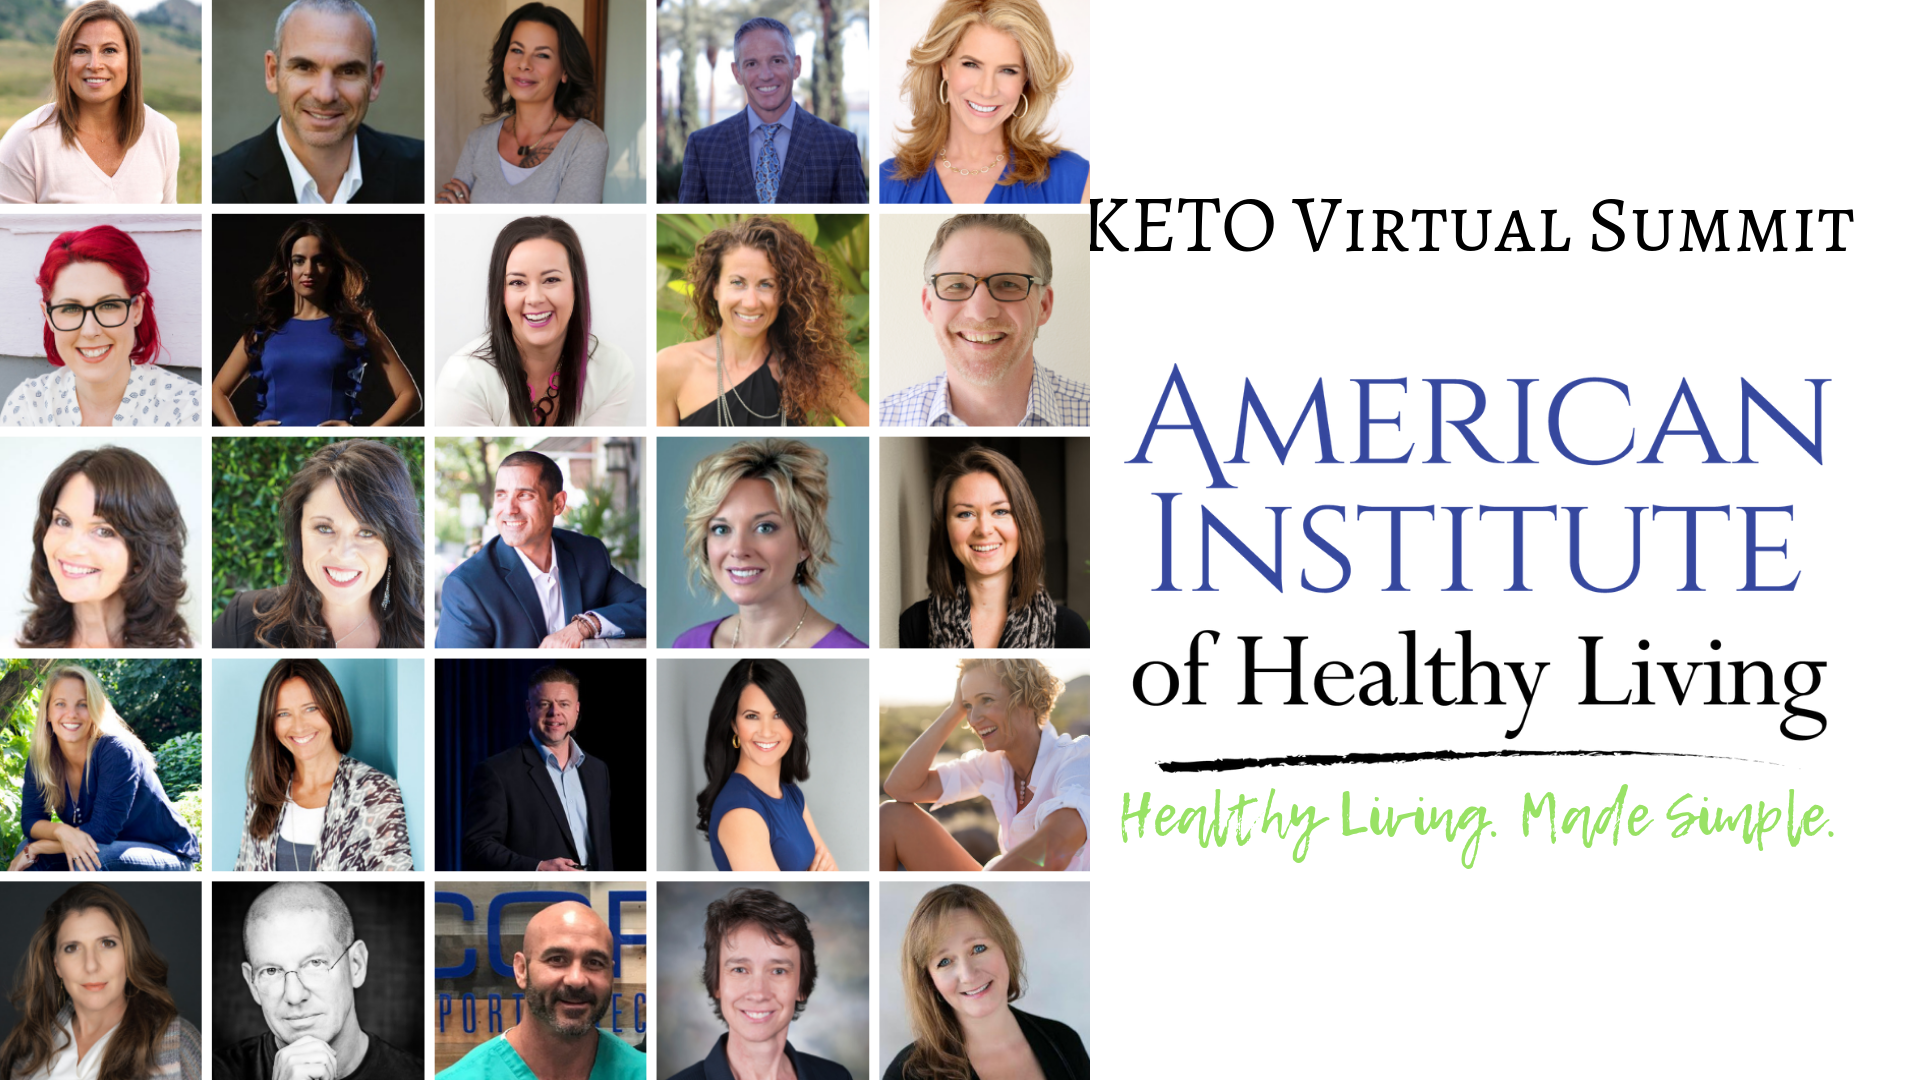 Keto Virtual Summit - Click here to get access to amazing, transformational information on the Ketogenic Diet. I spoke about Keto and Mindset, How to Transform Your Limiting Beliefs Around Health.LISTEN HERE